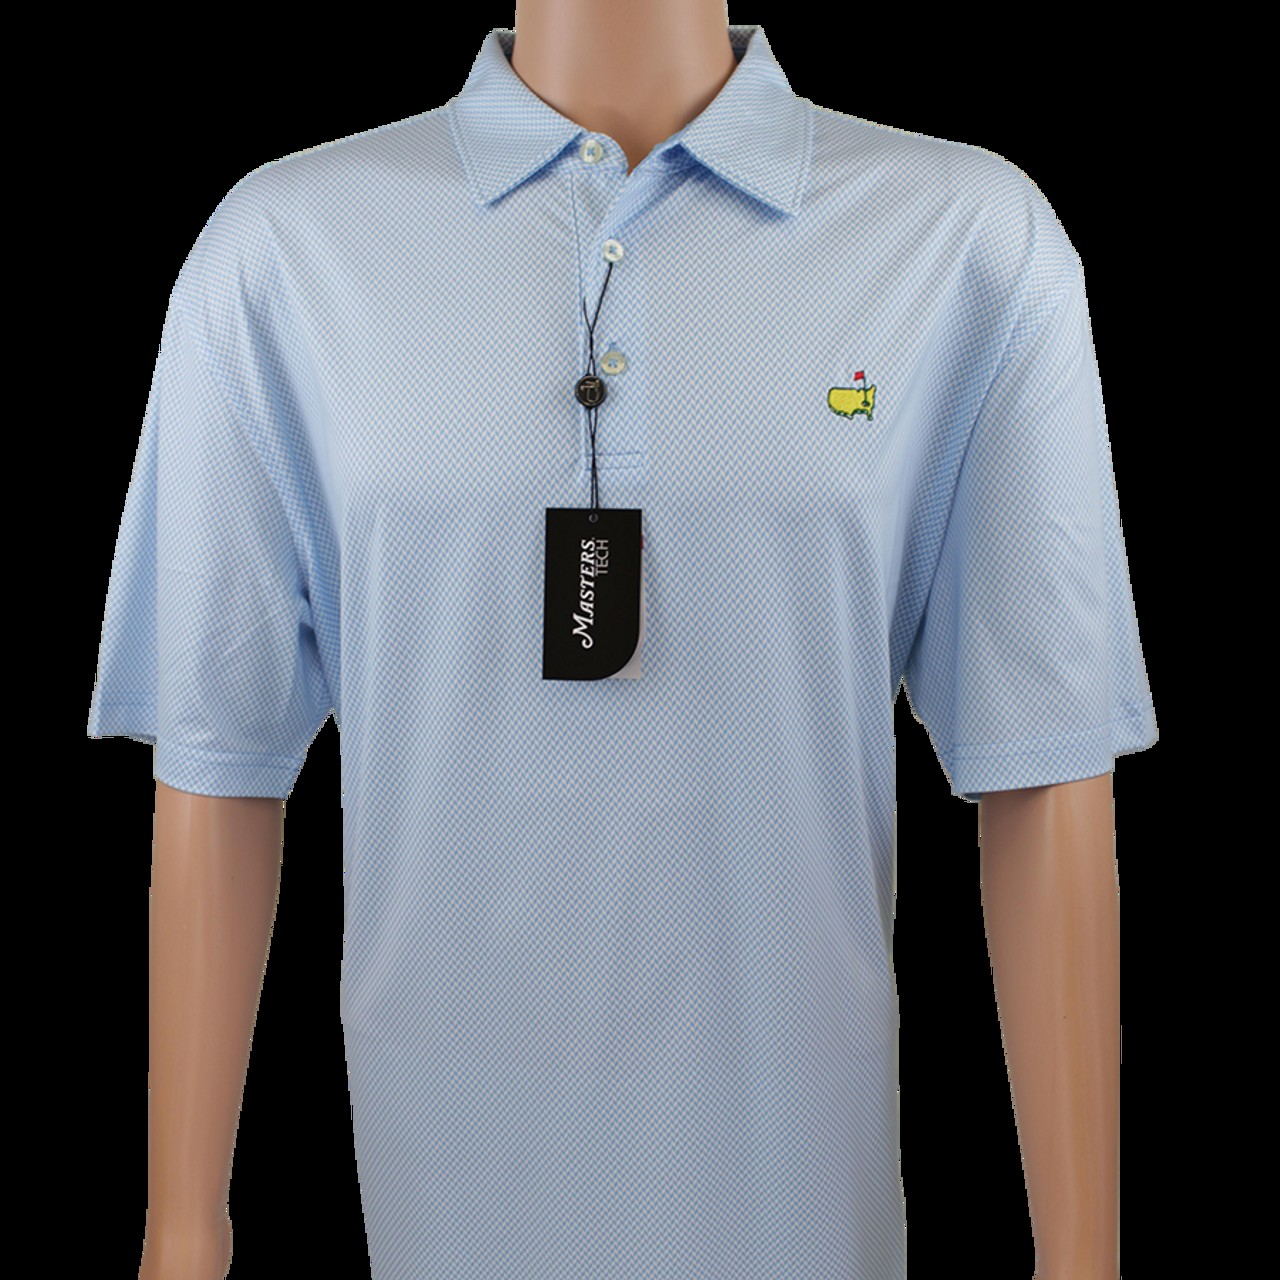 155cb8348 Masters Sky Blue Pattern Performance Tech Golf Shirt